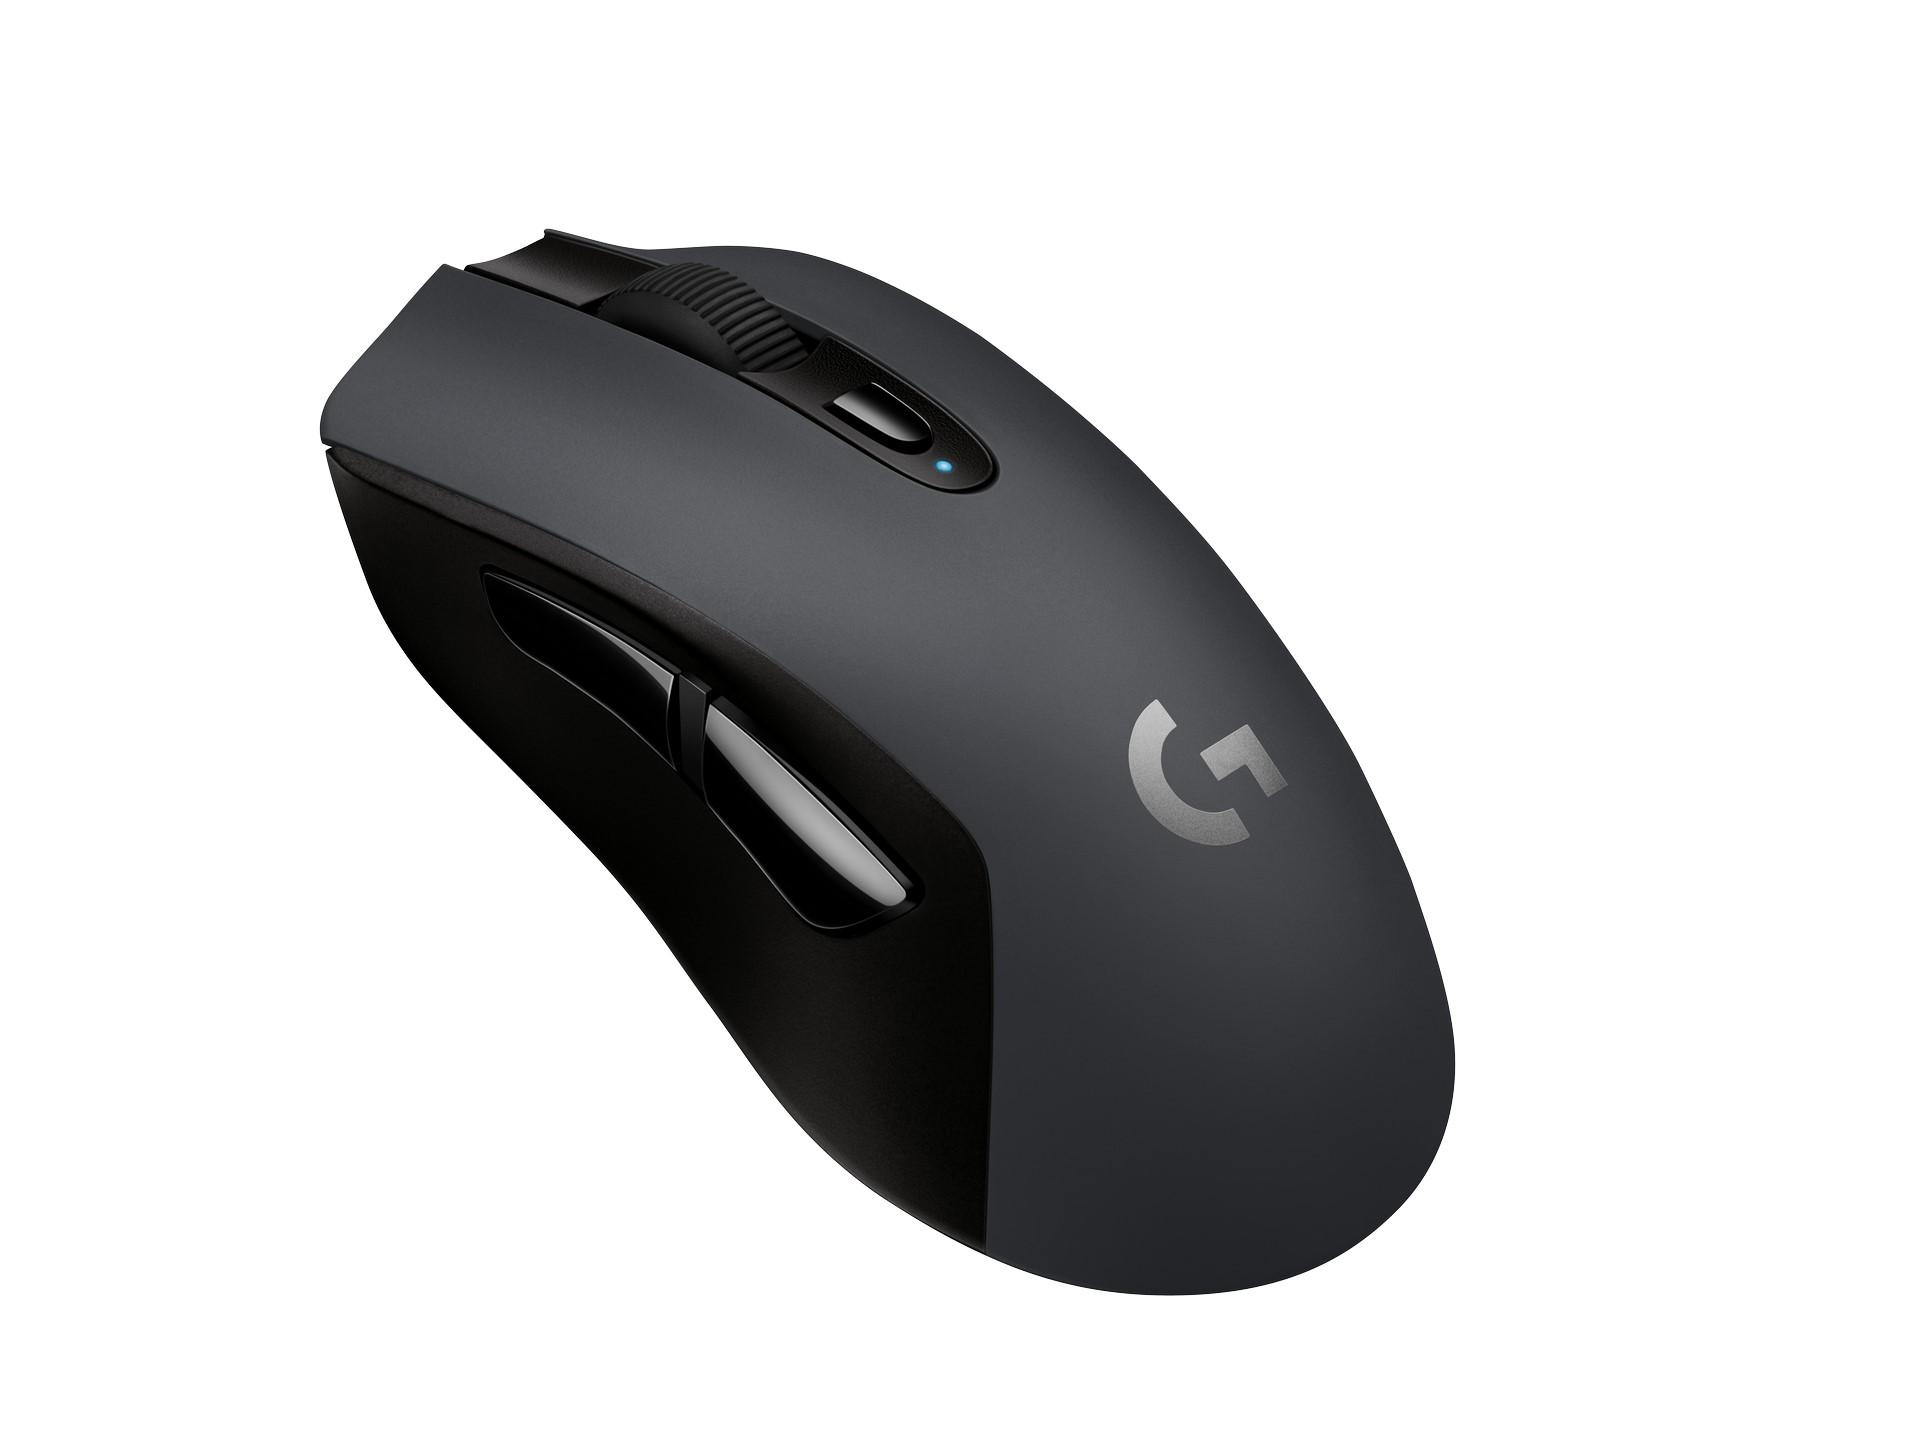 Logitech Lightspeed G603 gaming mouse and G613 keyboard